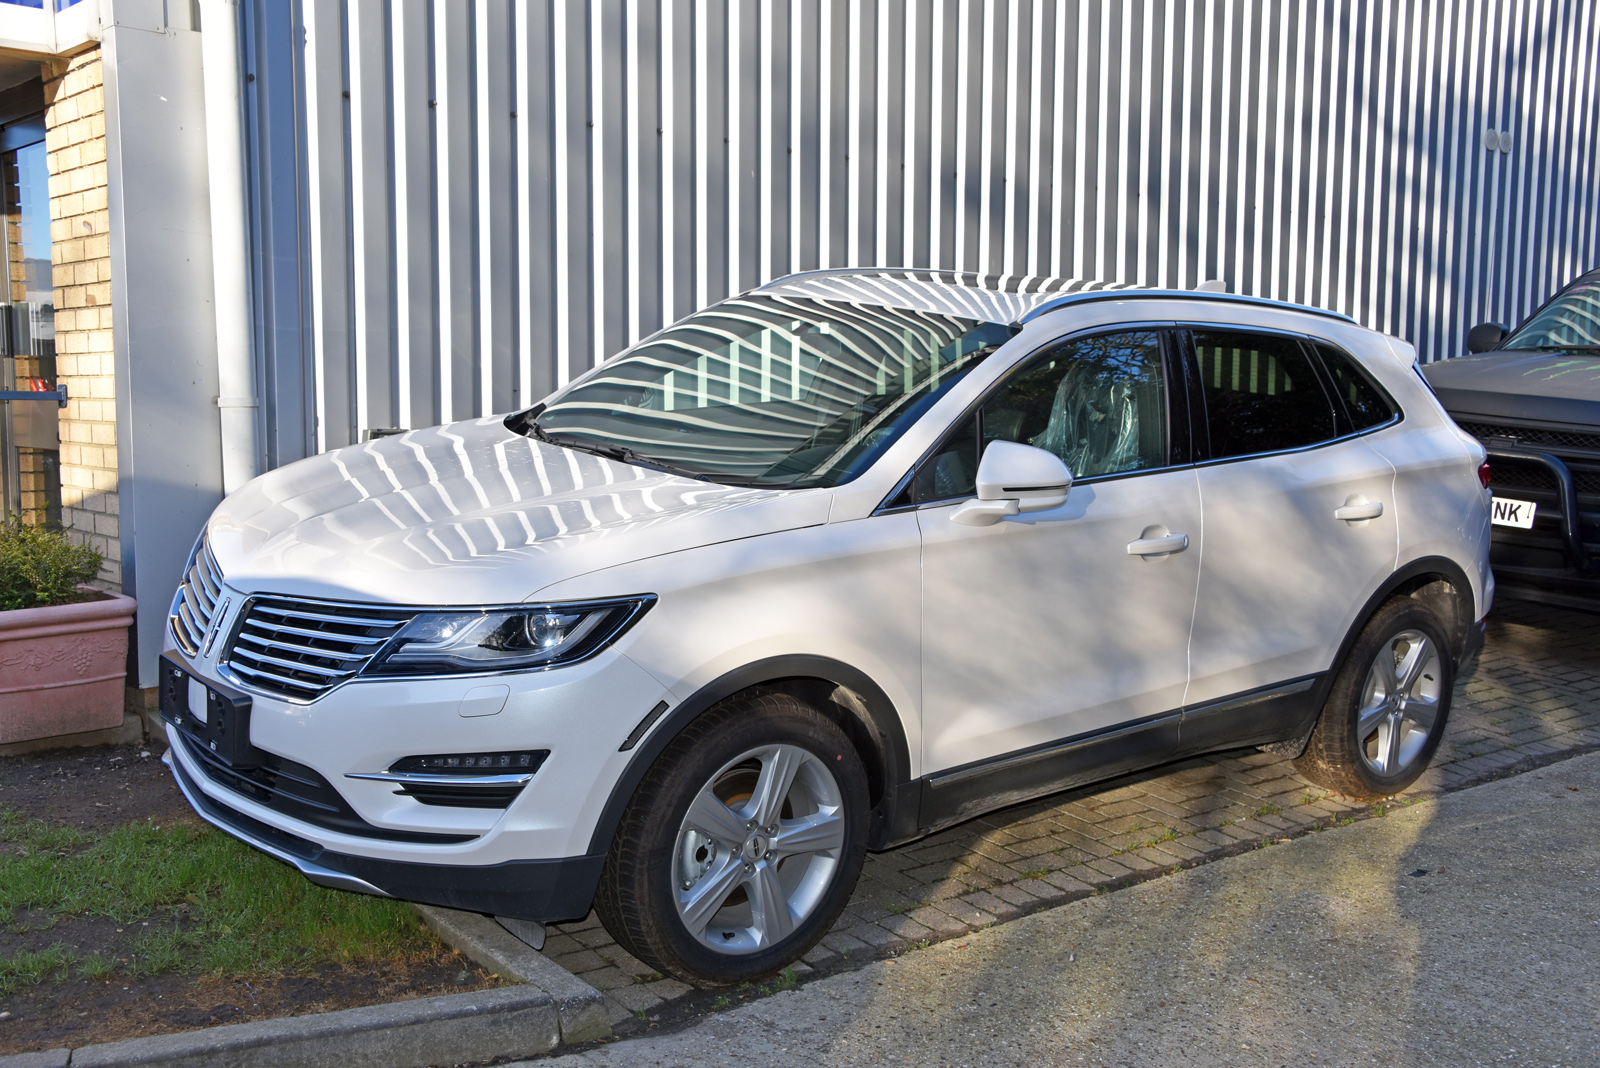 LINCOLN MKC 2.0 Petrol Turbo Automatic ECOBOOST - New Unregistered